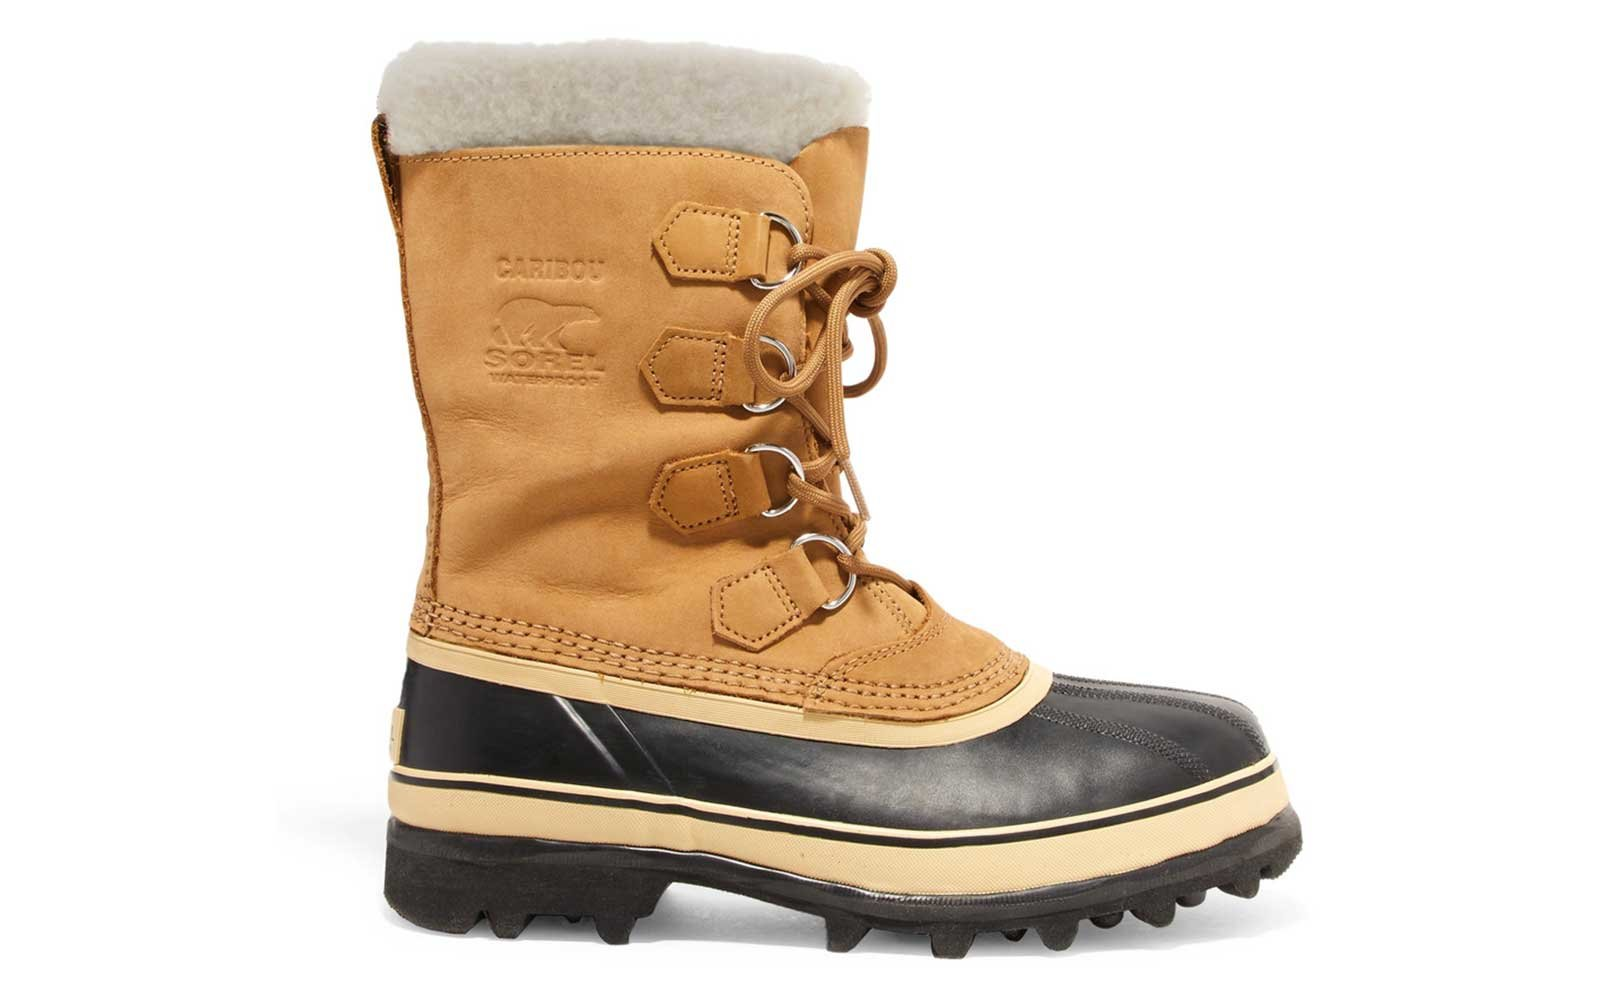 Extreme Weather Boots by Sorel